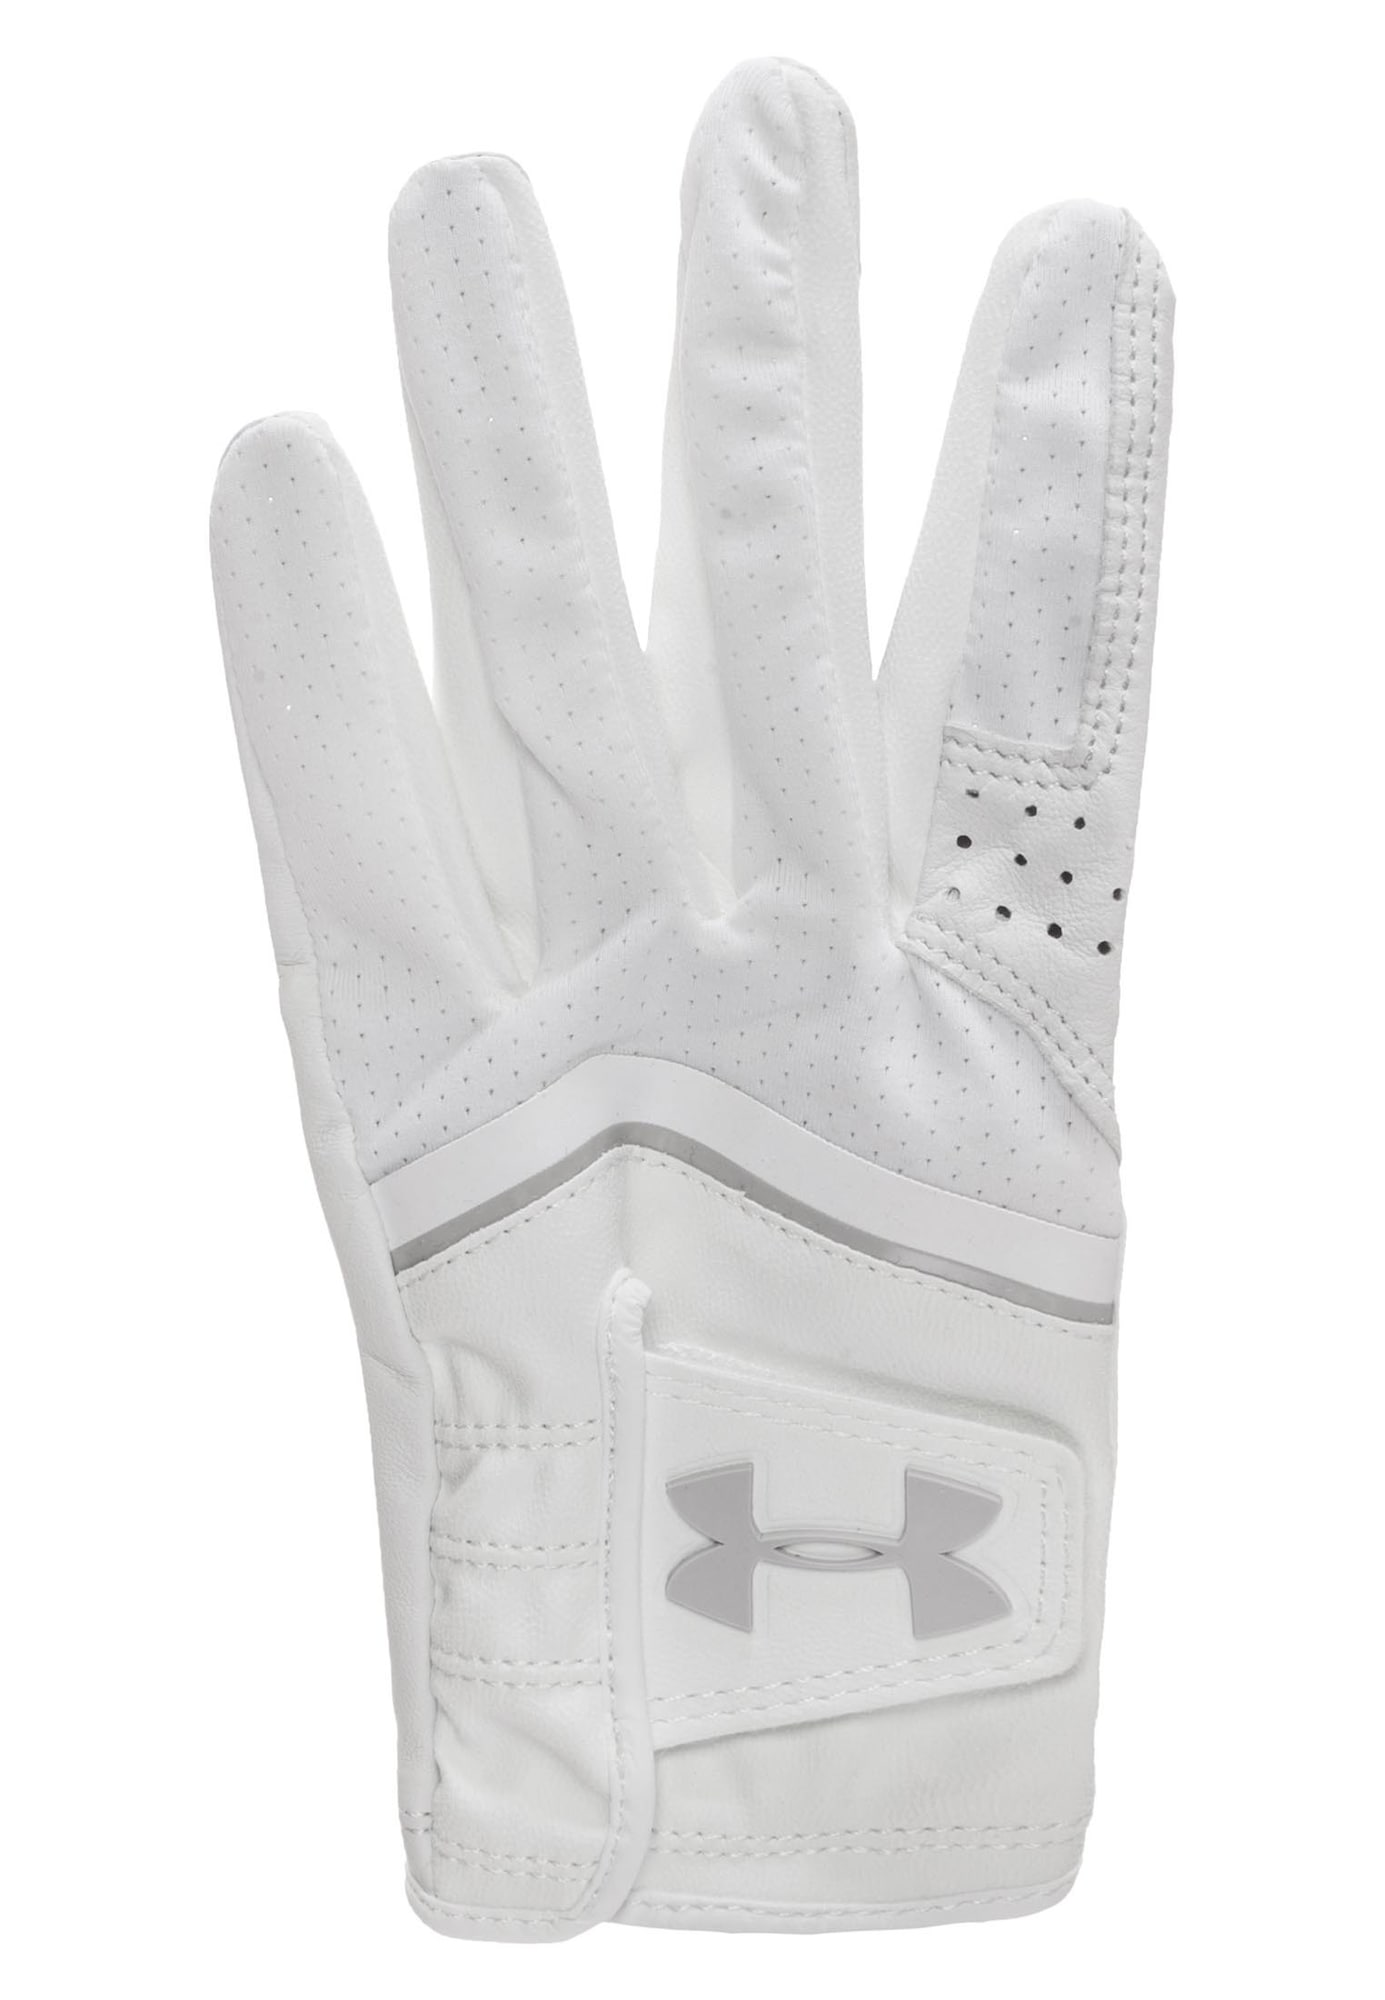 Golfhandschuh 'CoolSwitch' | Accessoires > Handschuhe | Weiß | Under Armour